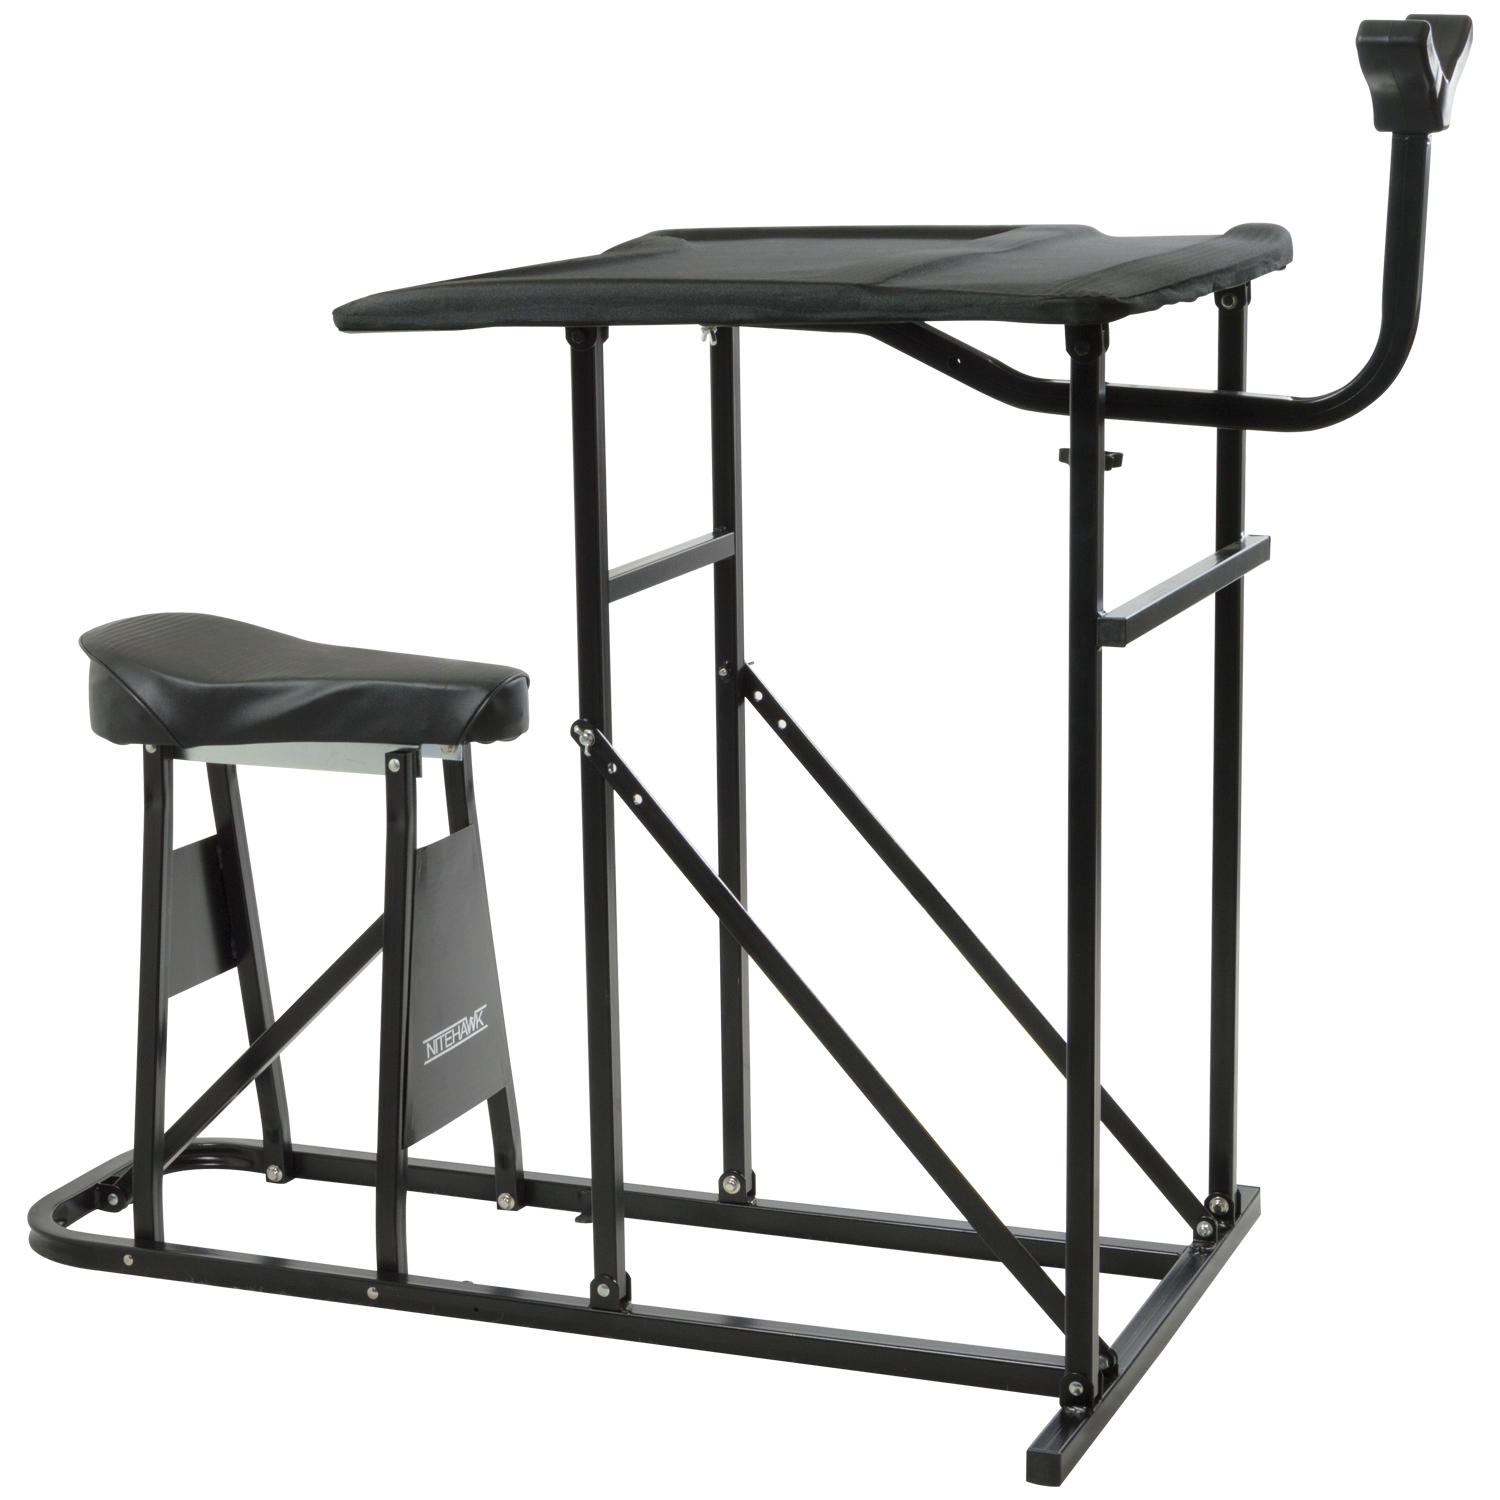 Nitehawk Shooting Table Bench Rest Miscellaneous Outdoor Value